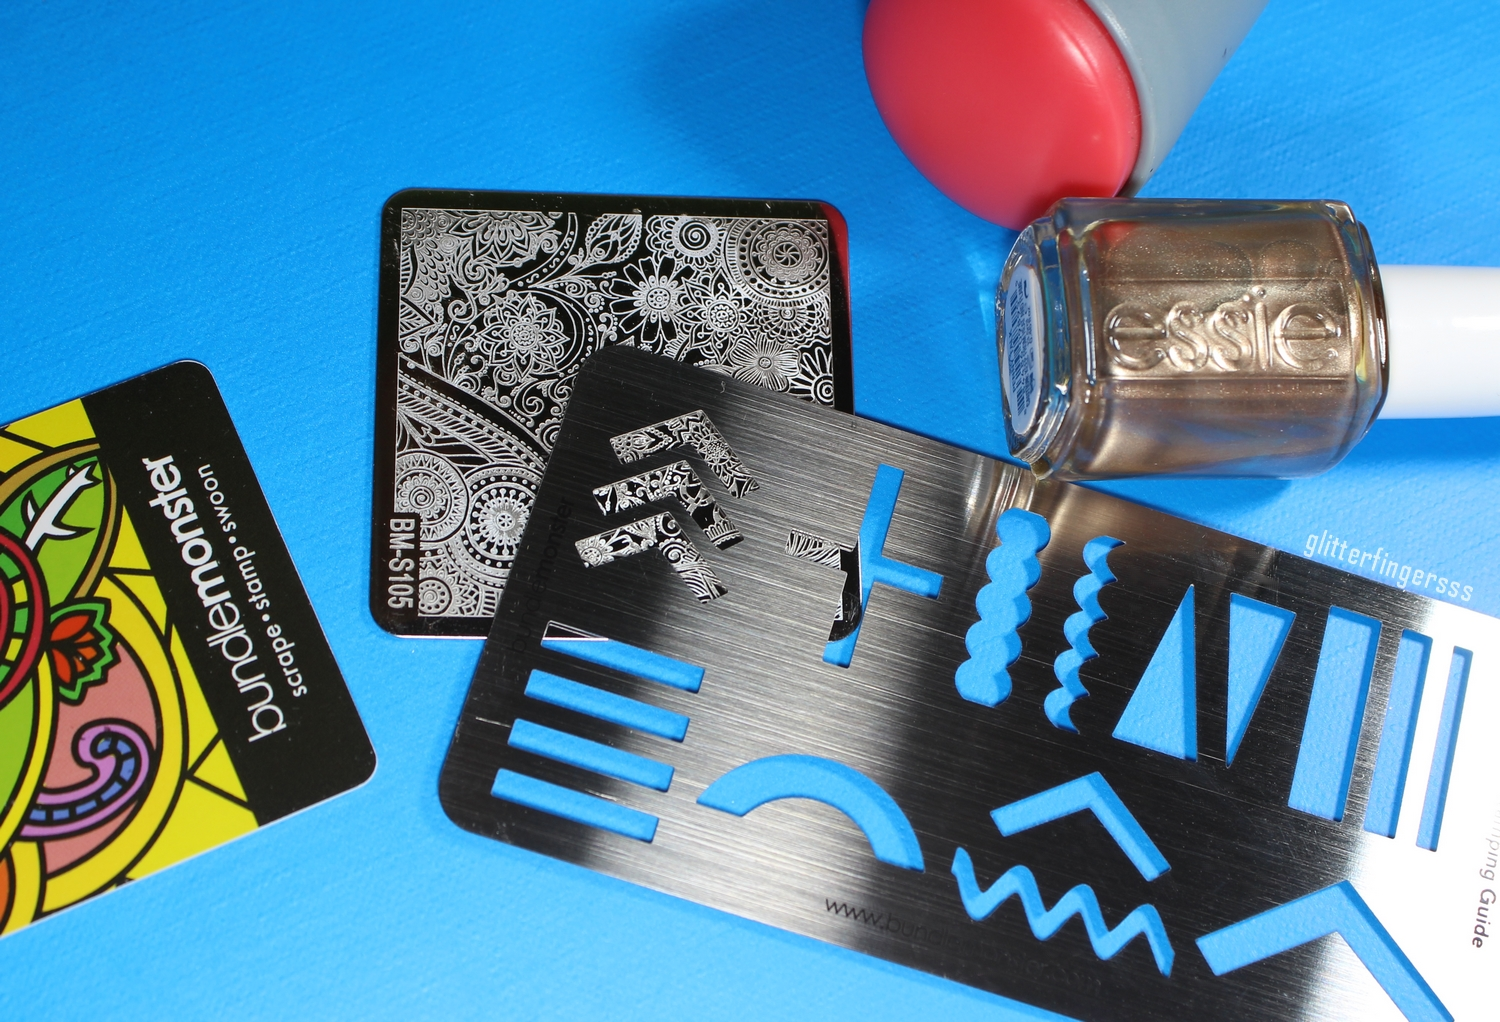 Stamping Plates But Using These Templates Guides You Can Stamp Different Shapes Out Of Your Plate Patterns Sounds Interesting Isnt It